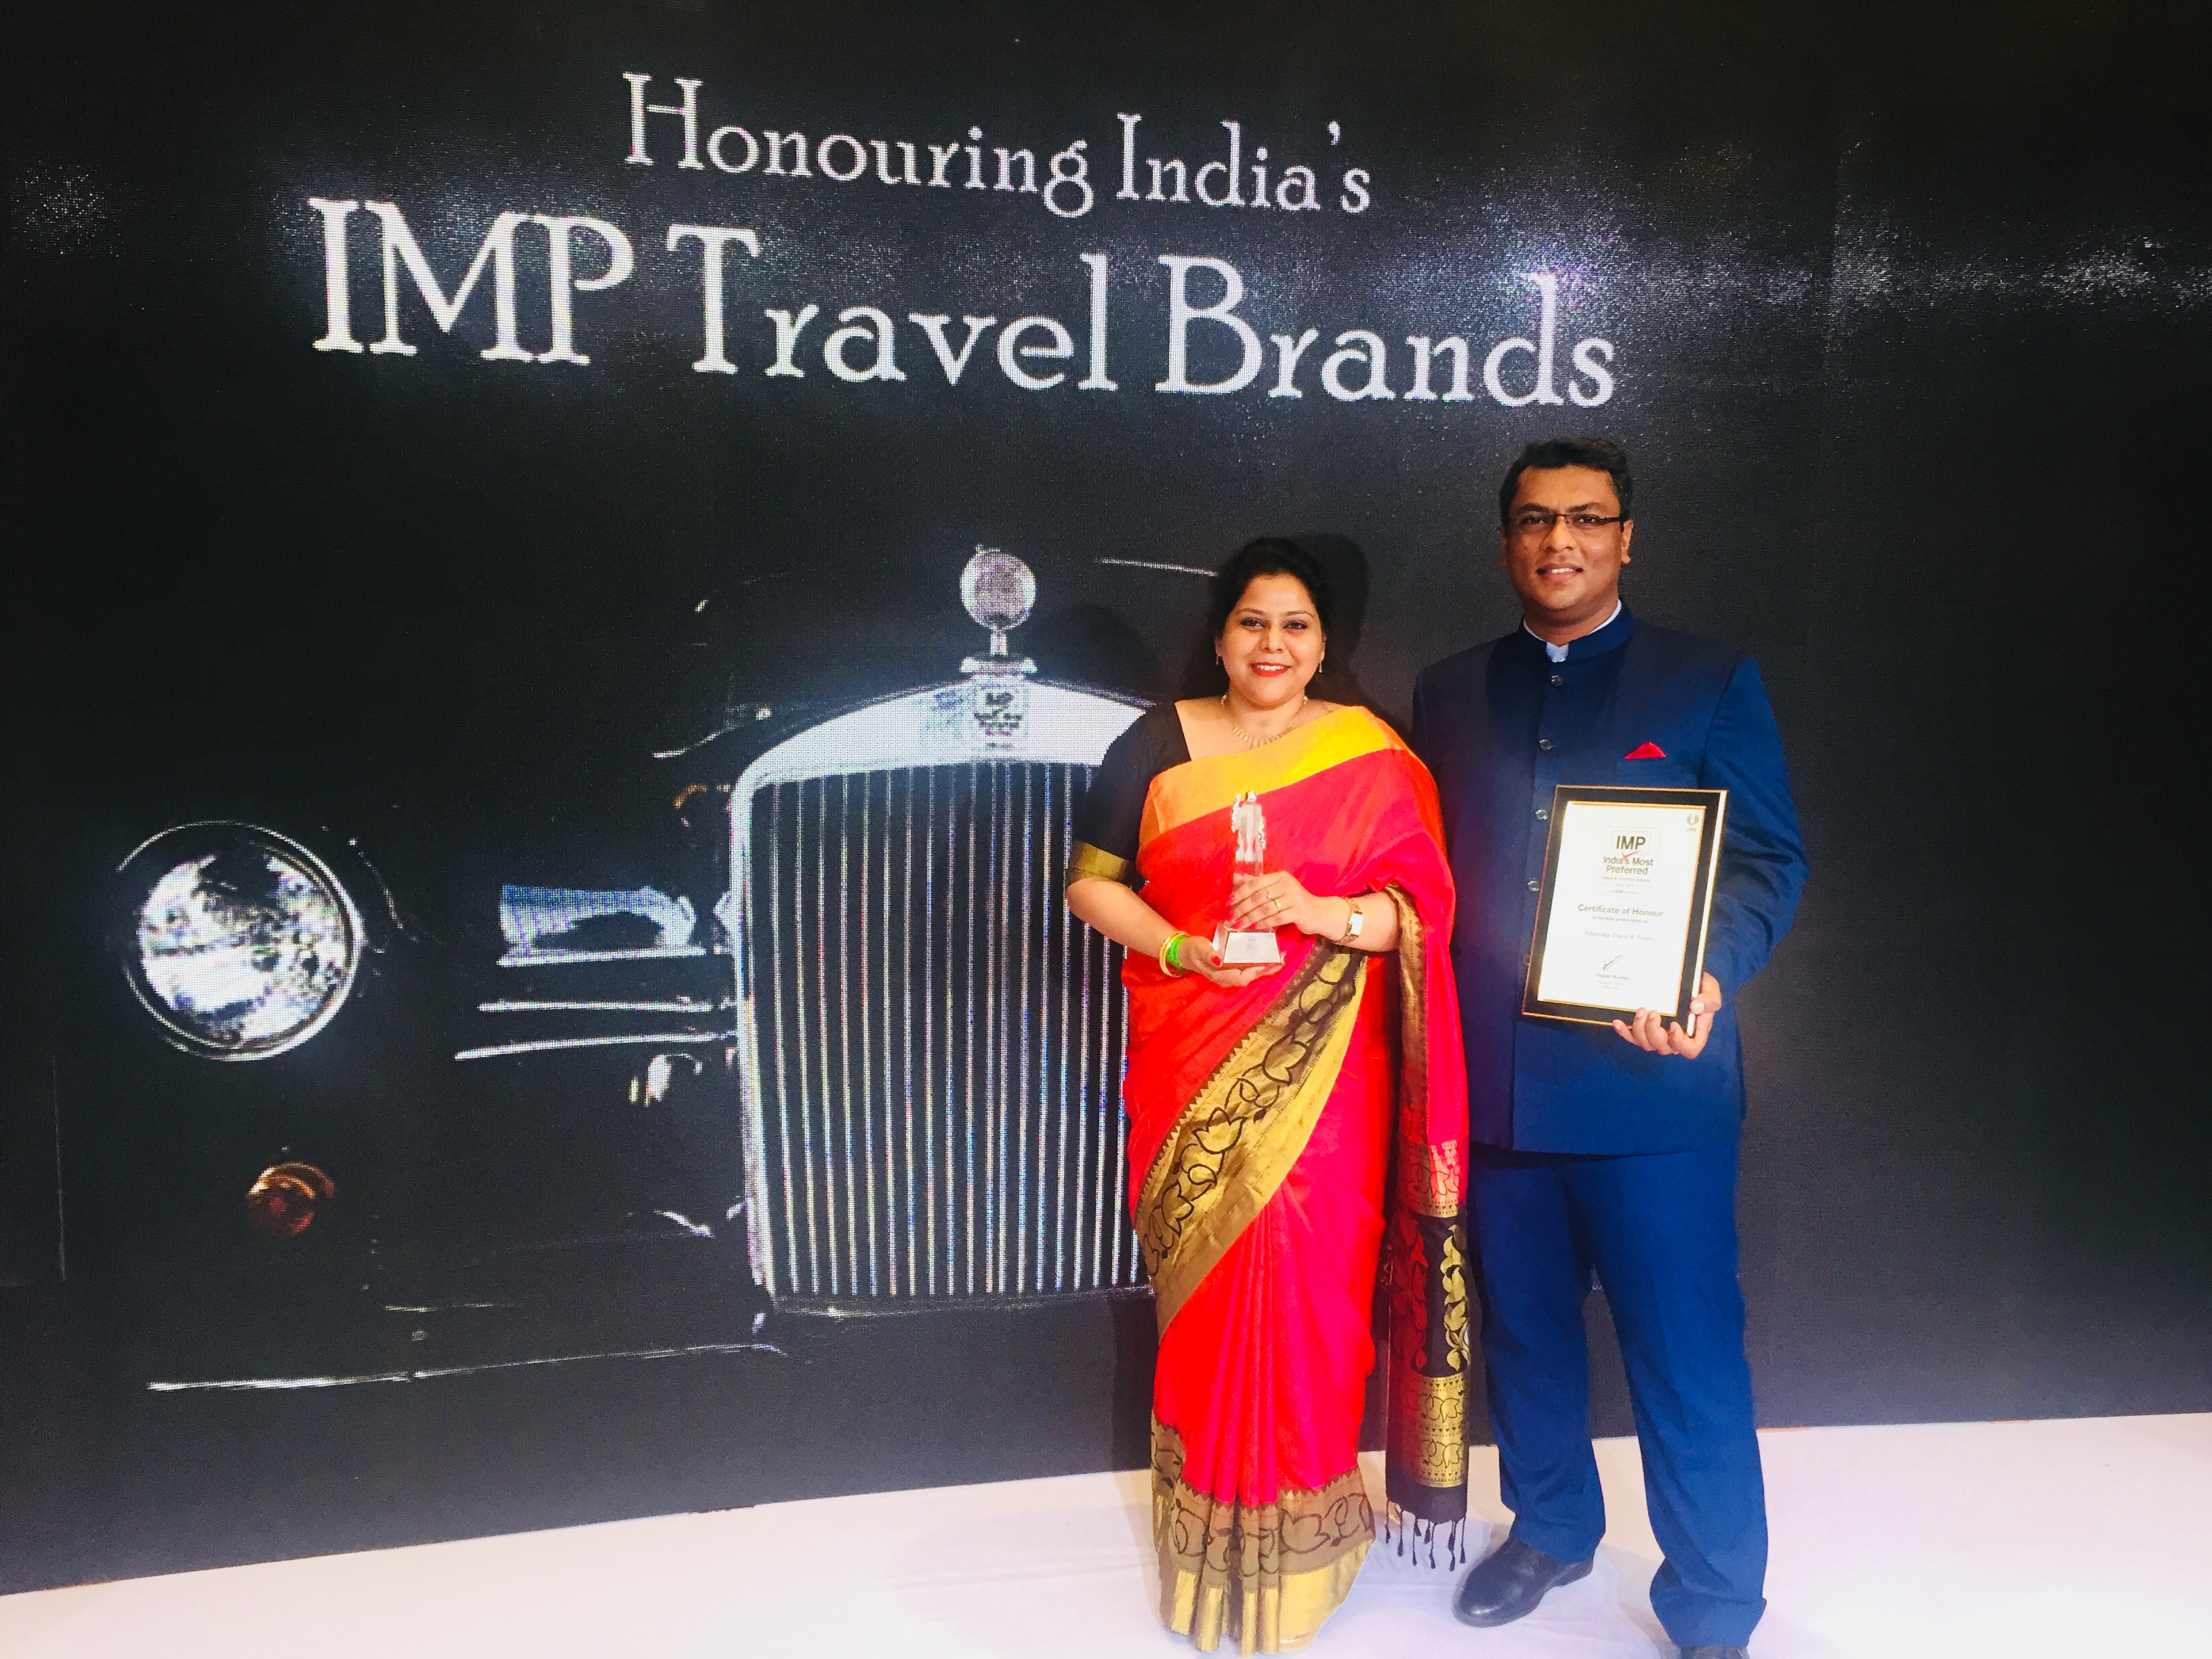 Fellowship: India's most preferred travel & tourism brand